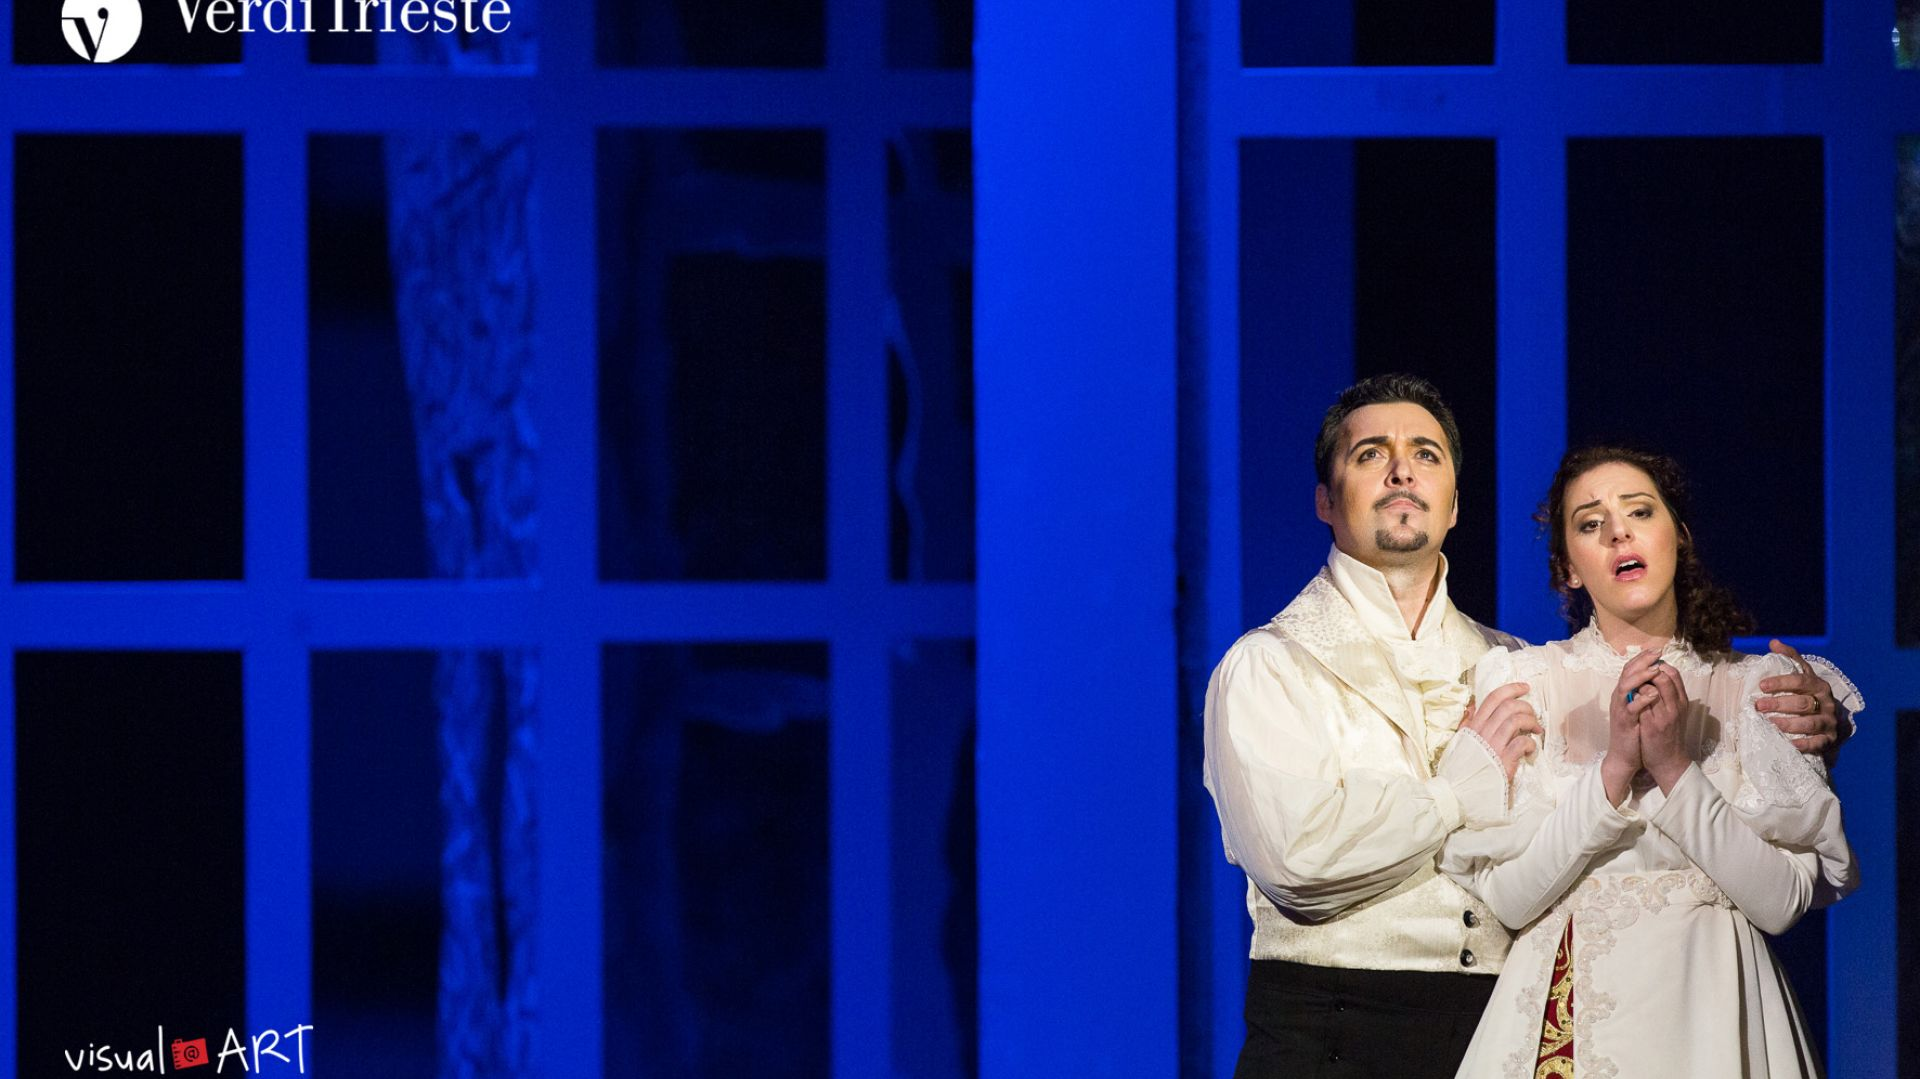 Evgenij Onegin on stage up to Saturday November 25th